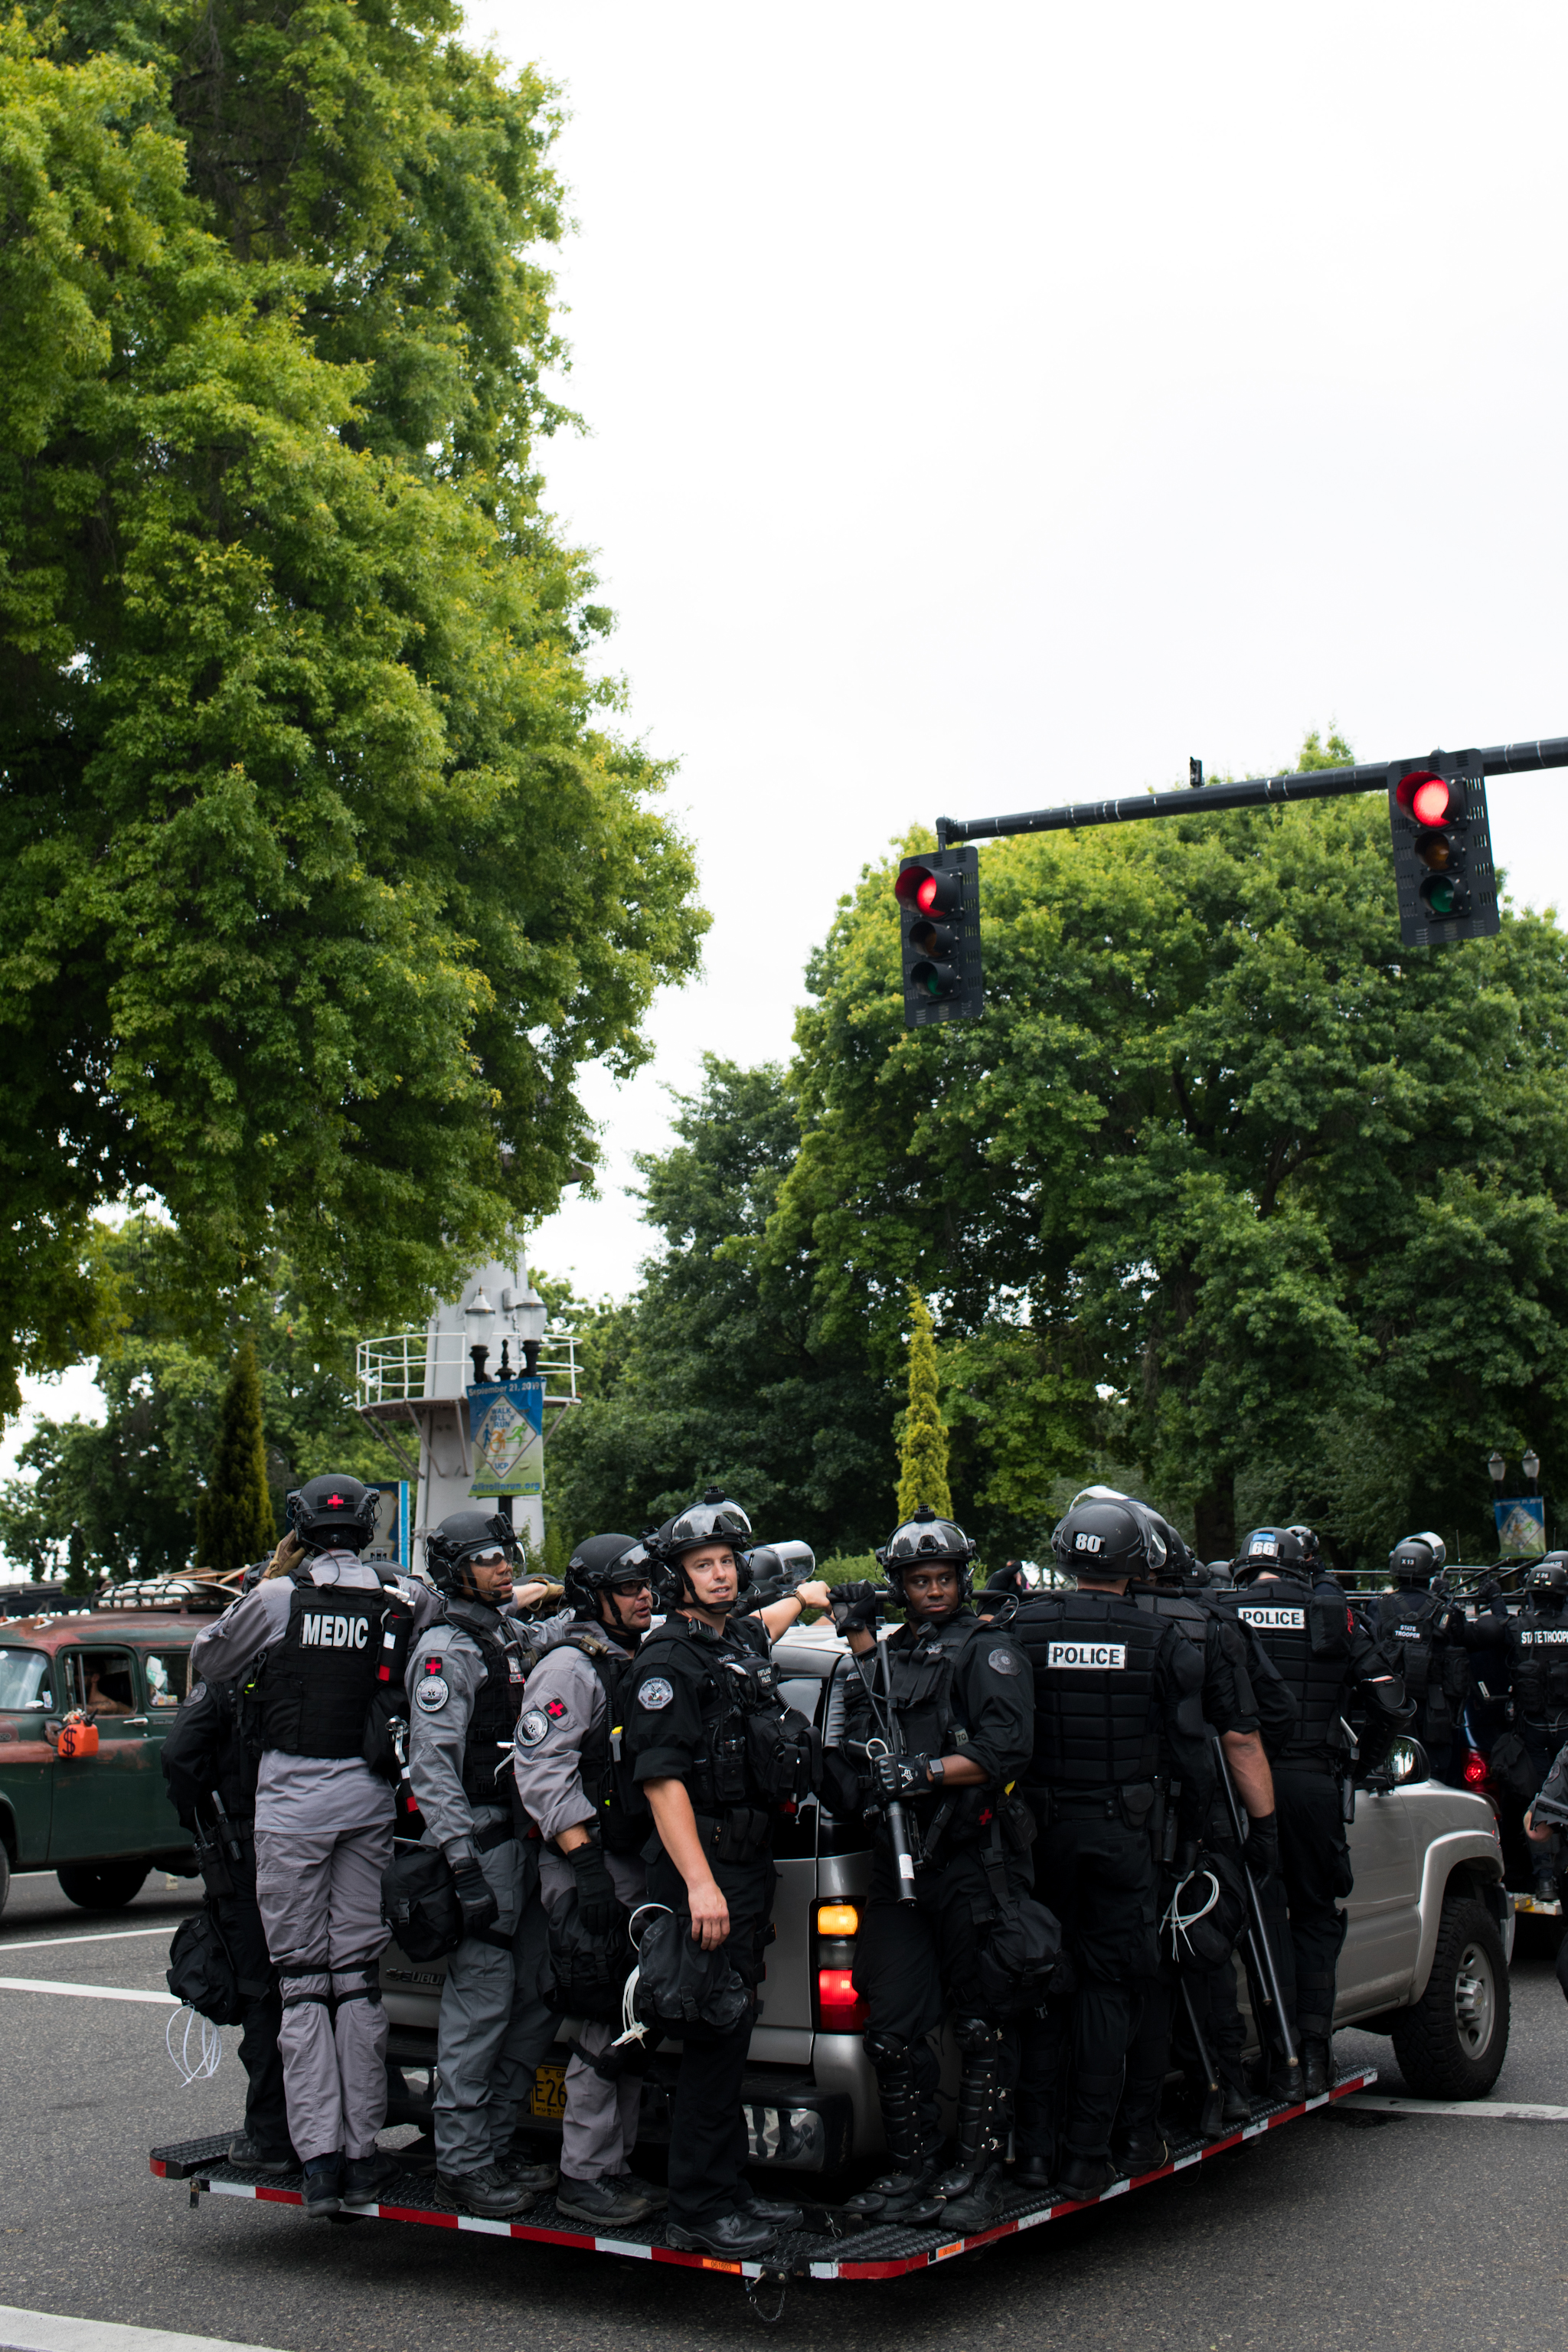 Scenes from the Portland Rally on August 17